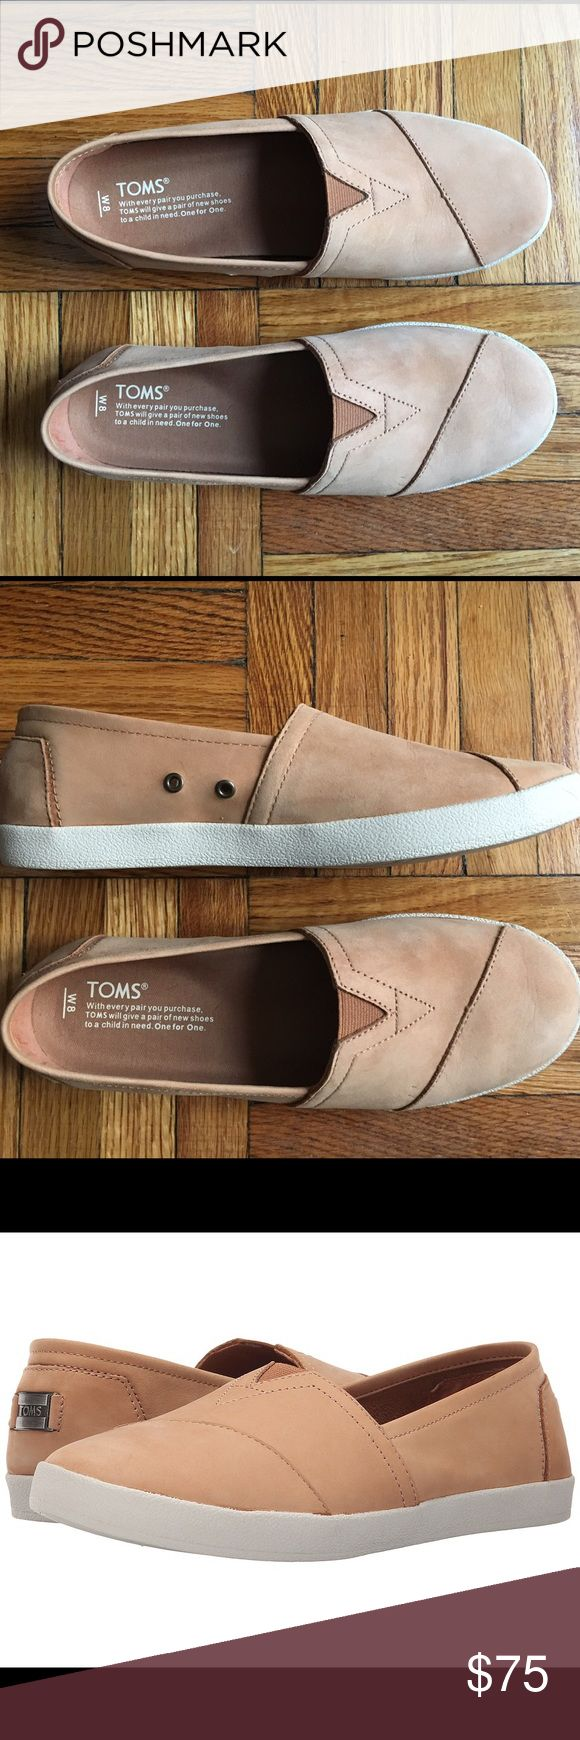 Toms Avalon Slip-On - Sandstorm Nubuck Gorgeous, super soft suede Toms. Only worn once! TOMS Shoes Sneakers